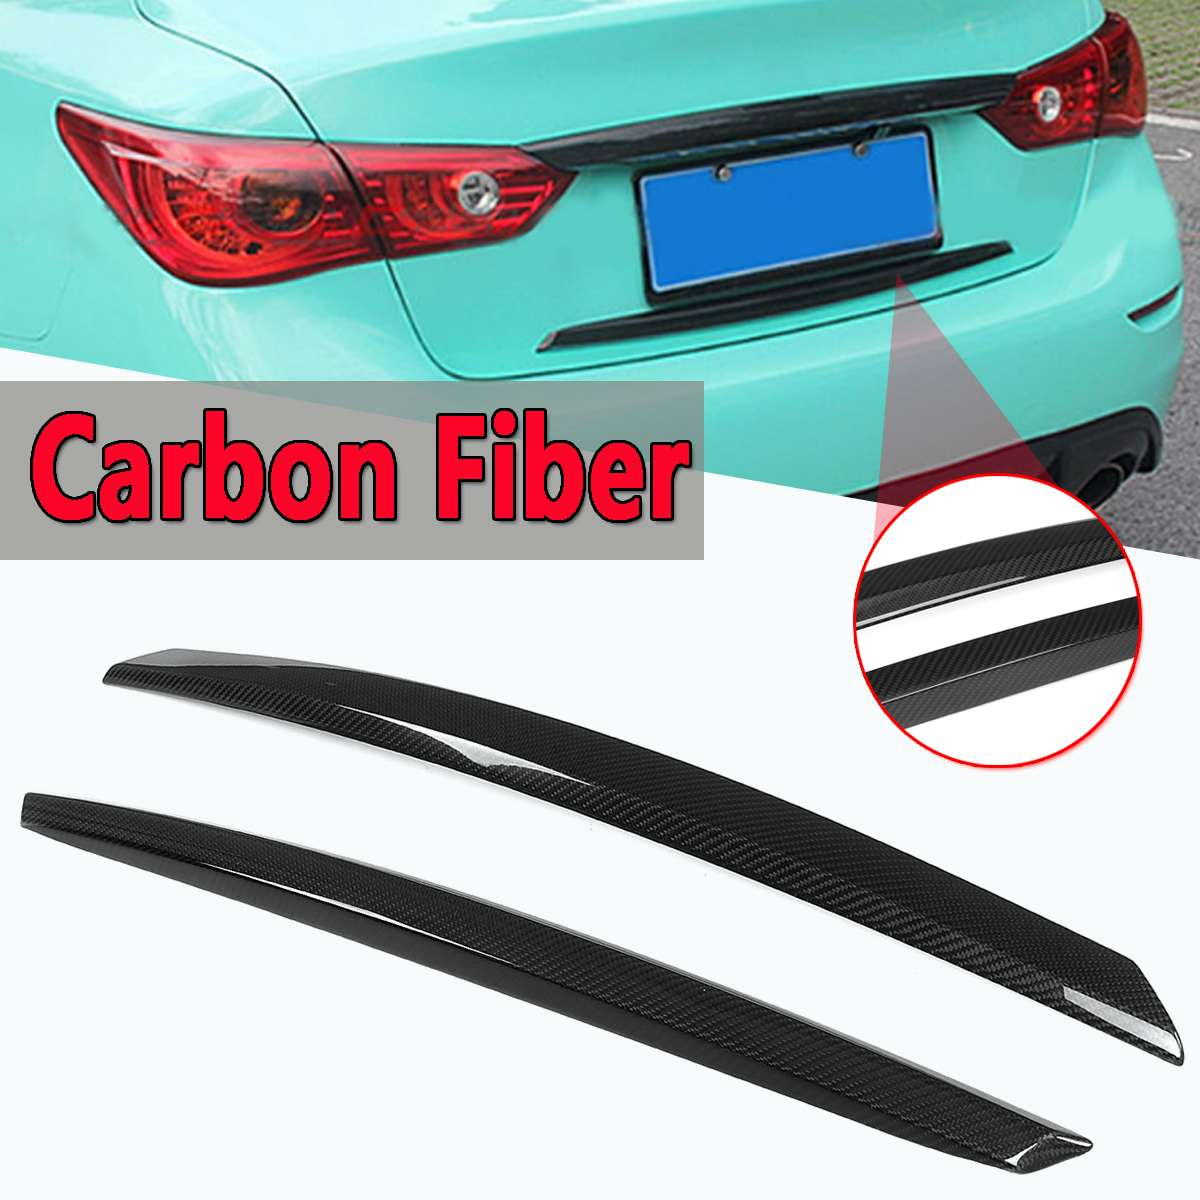 Rear Trunk Plate Trim Cover 2 Pcs For Infiniti Q50 2014-2017 S Real Carbon Fiber Rear Car-Styling Sticker Trunk Wing Trim CoversRear Trunk Plate Trim Cover 2 Pcs For Infiniti Q50 2014-2017 S Real Carbon Fiber Rear Car-Styling Sticker Trunk Wing Trim Covers